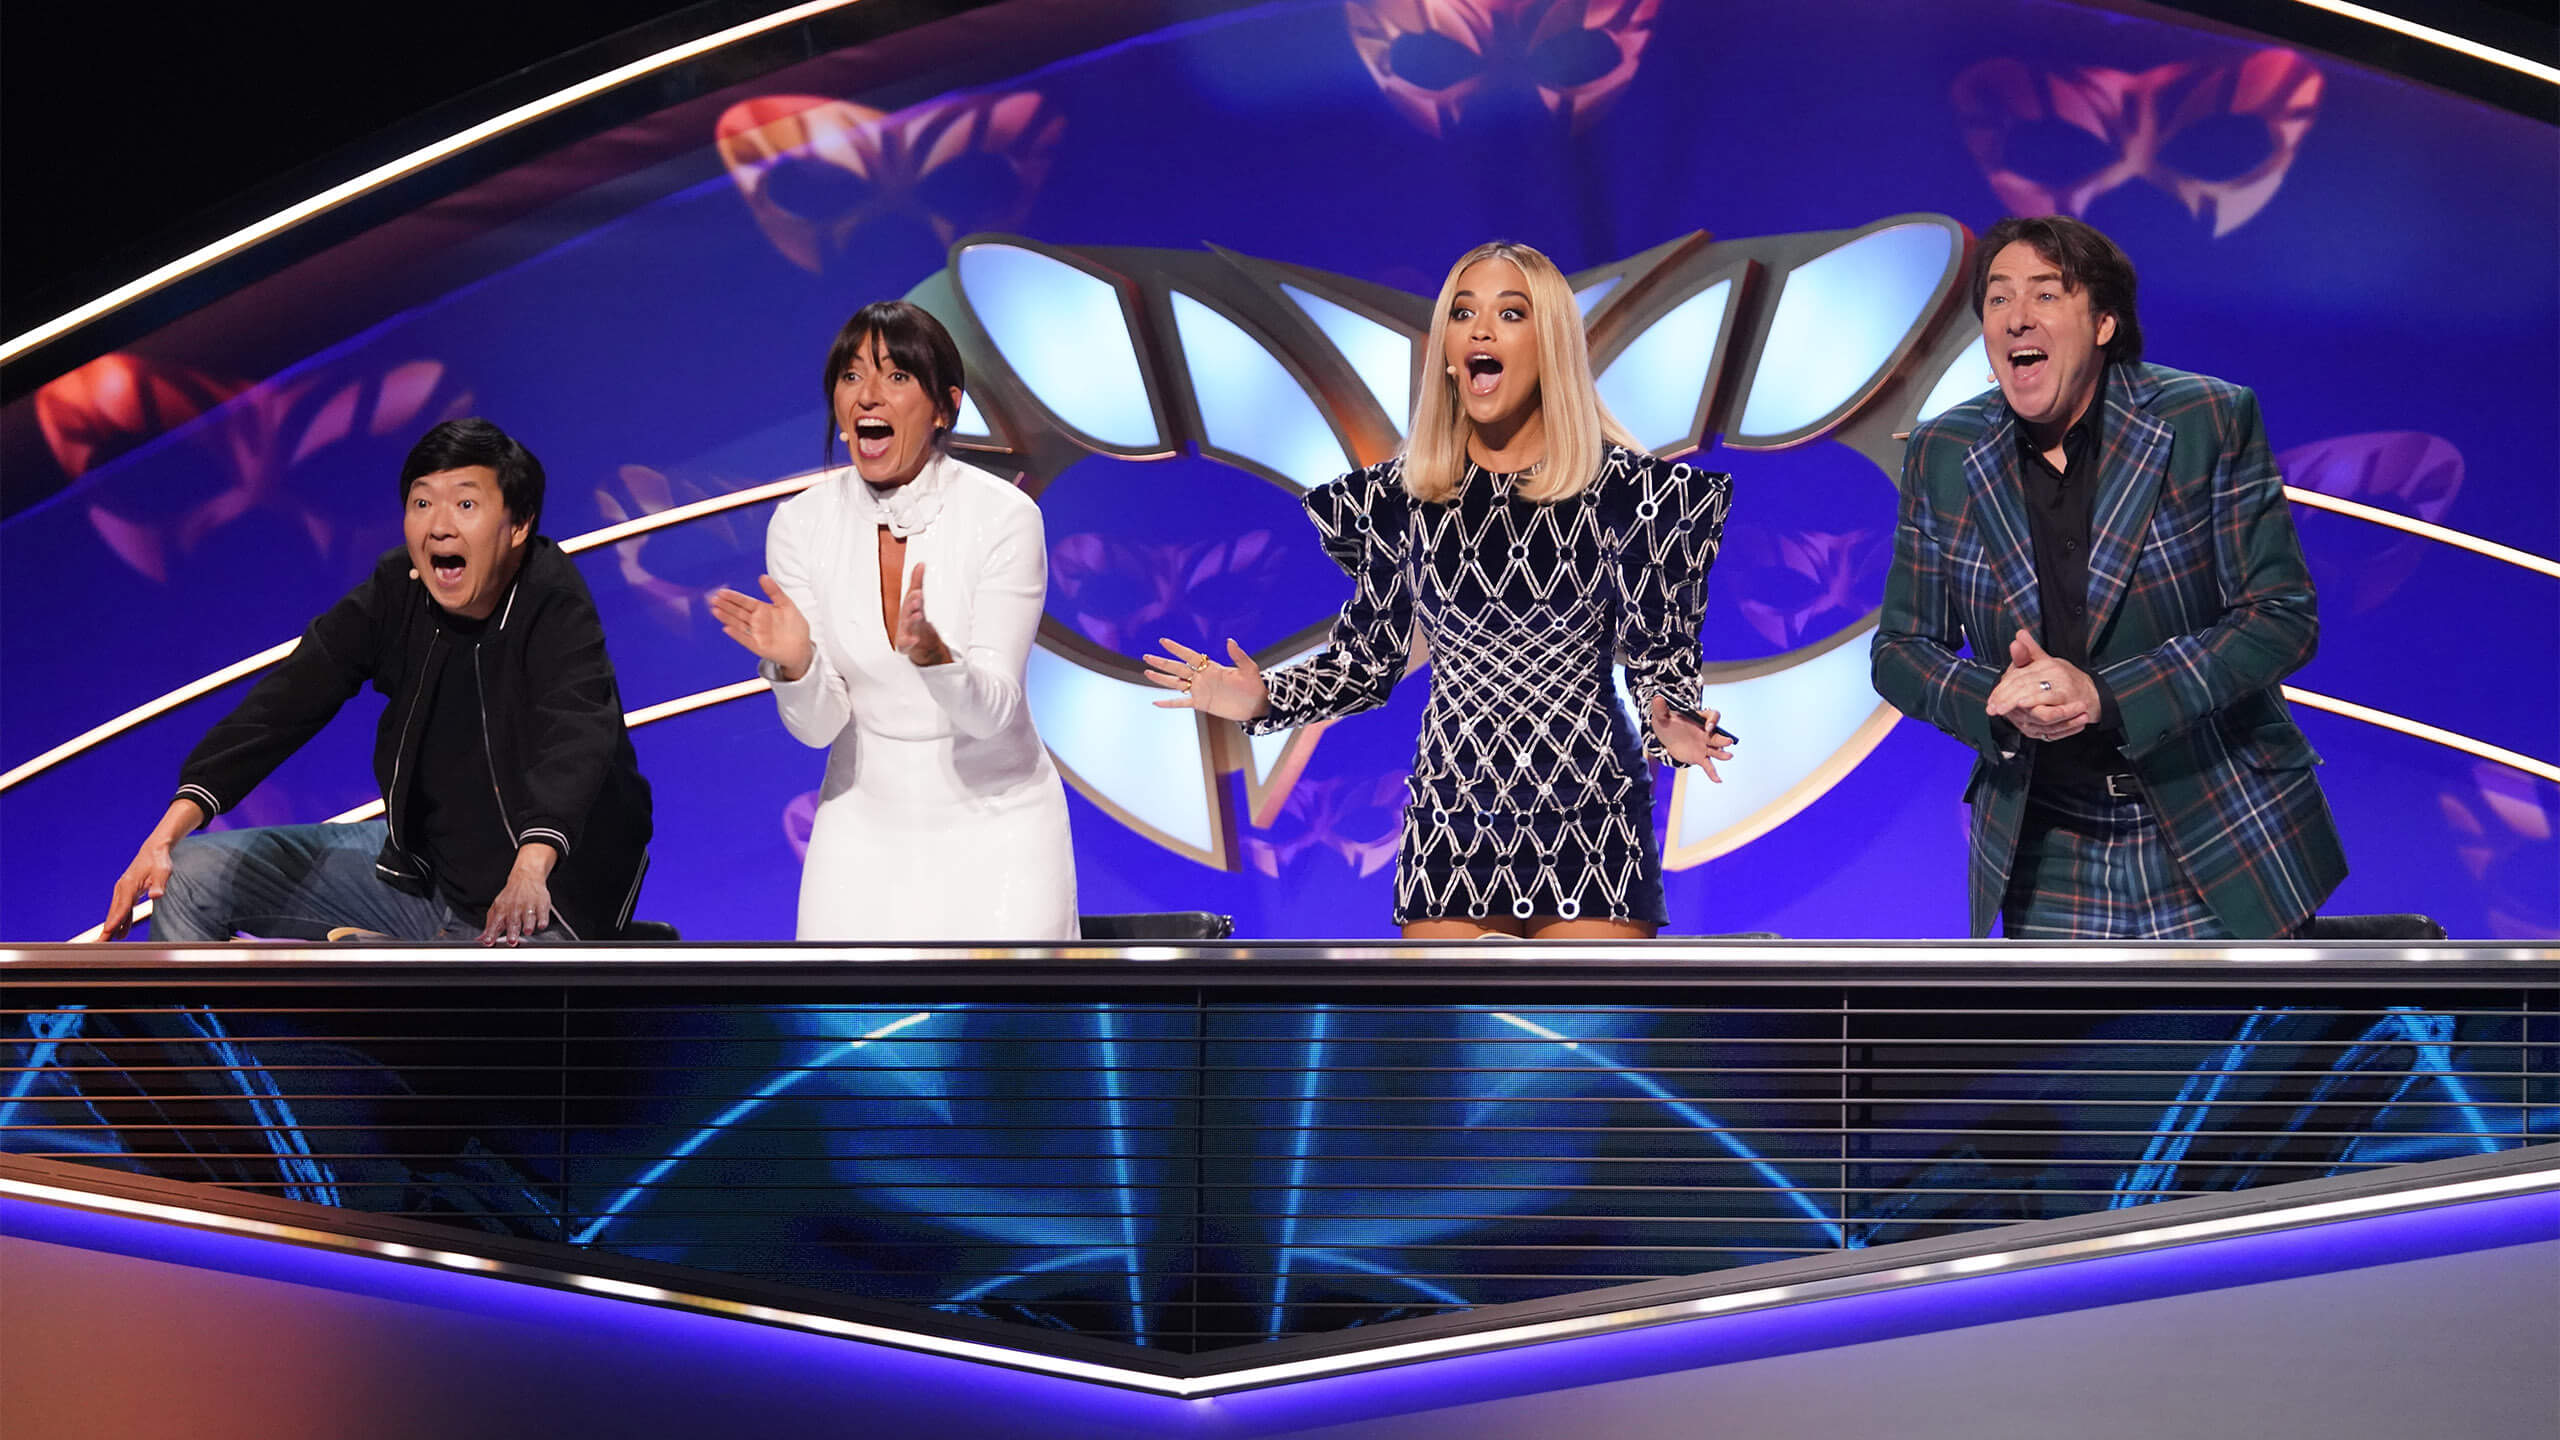 The Masked Singer - panel of four judges